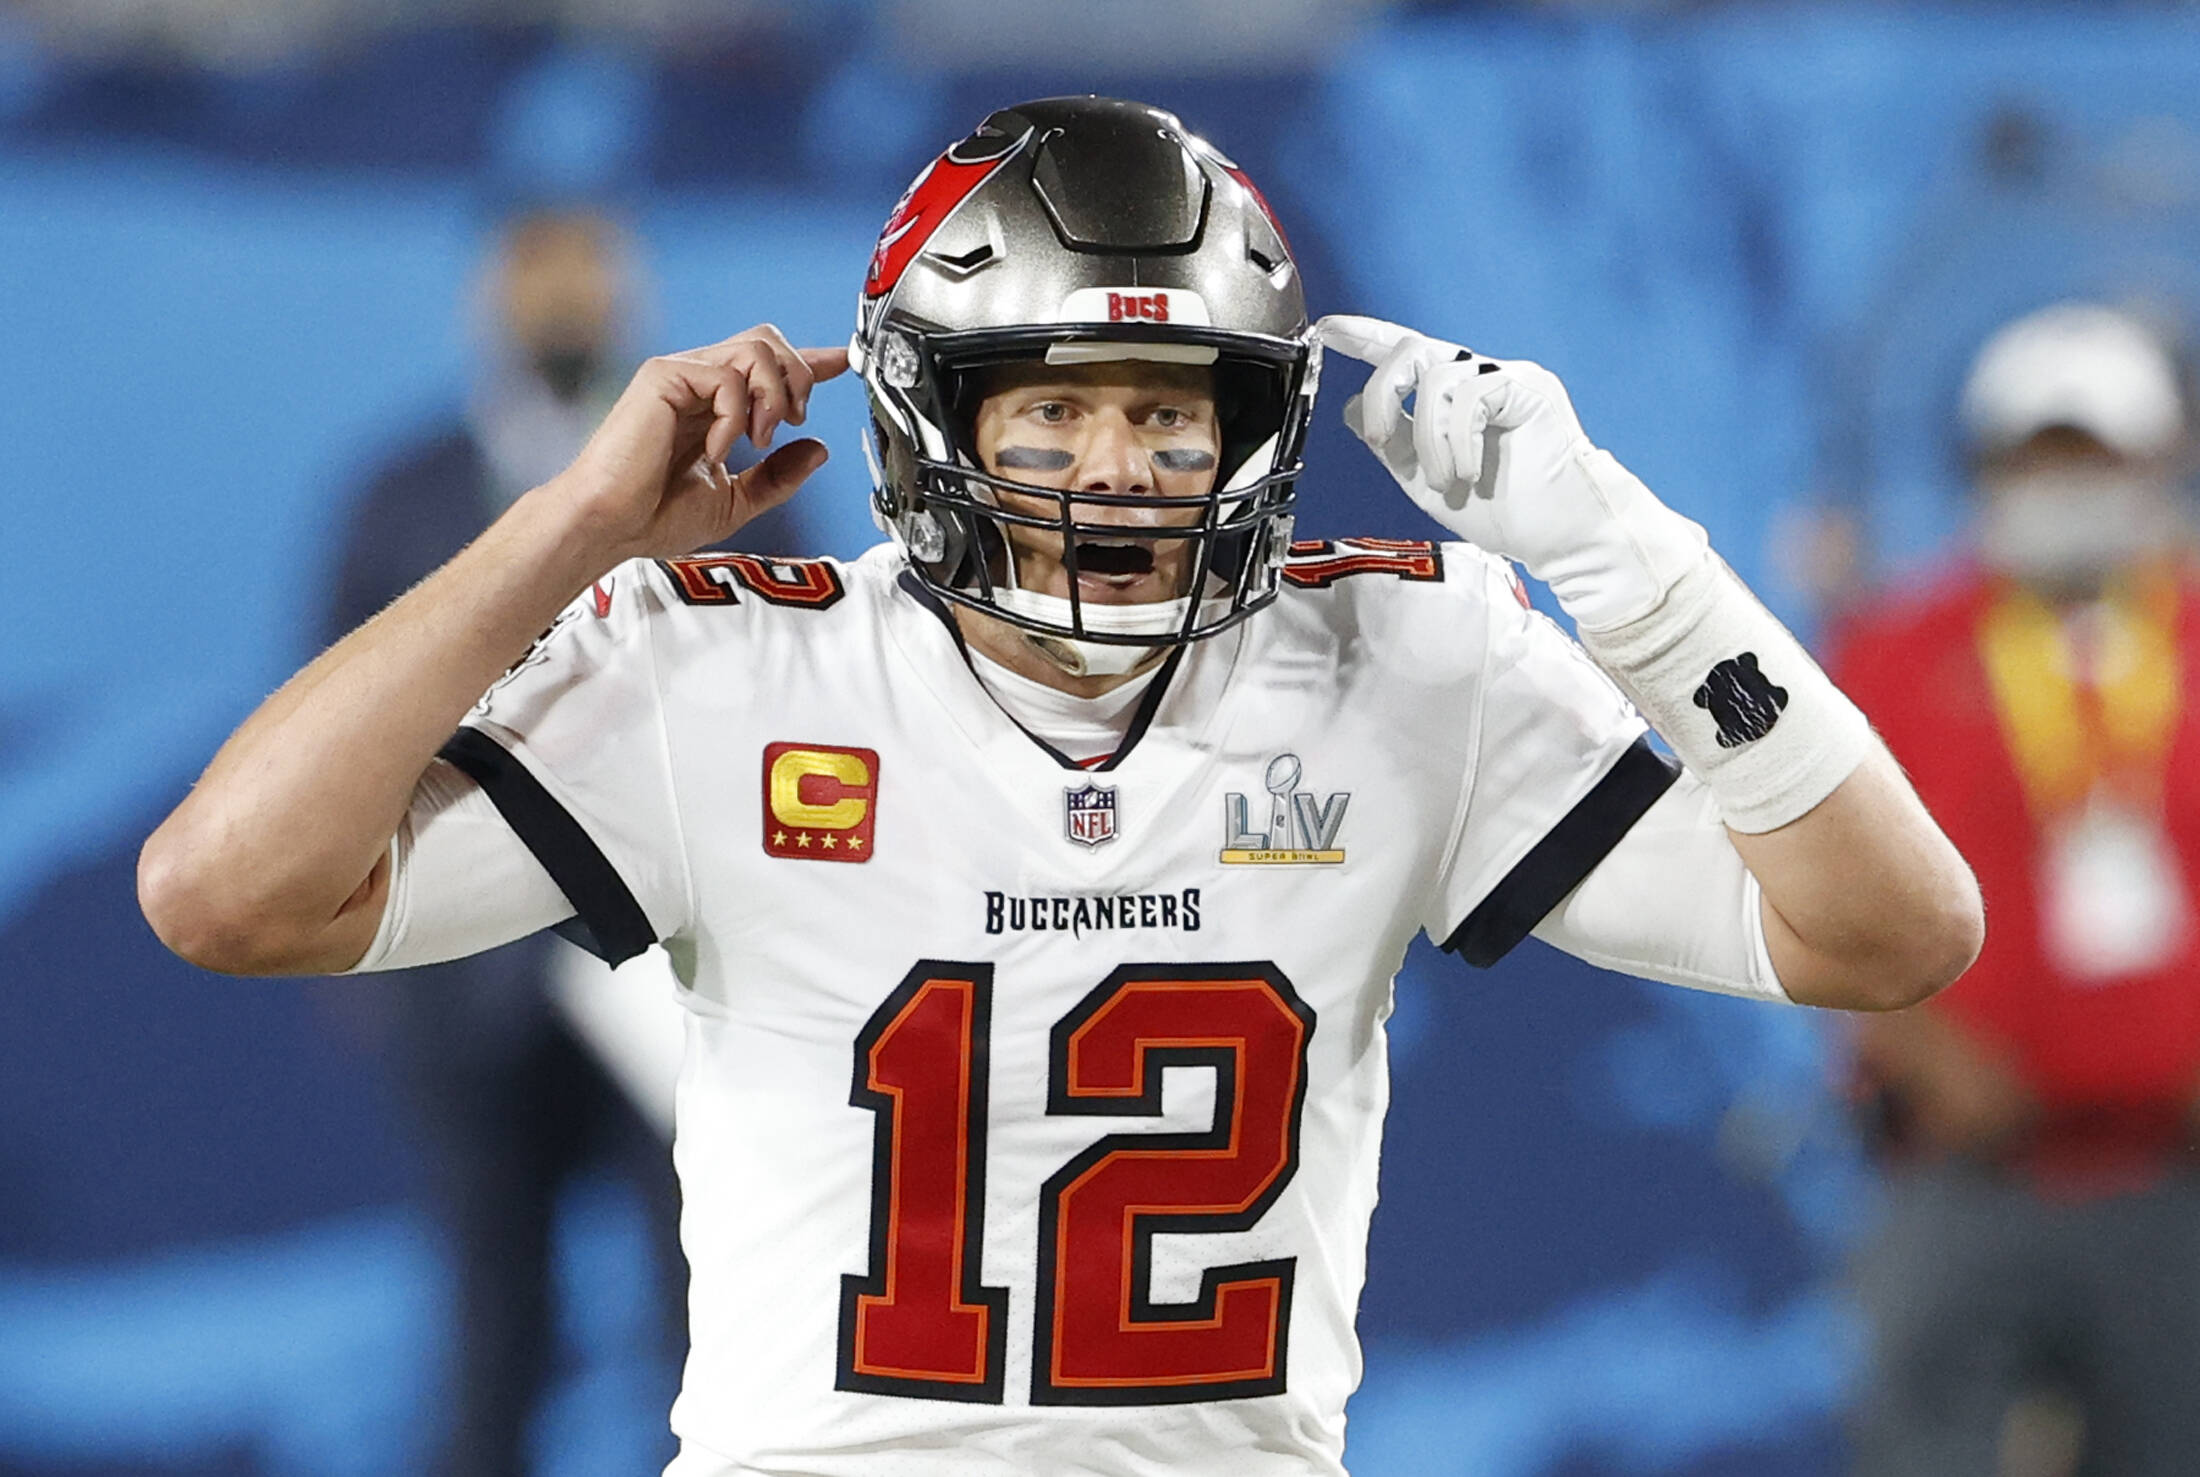 Tampa Bay Buccaneers quarterback Tom Brady (12) calls an audible during the third quarter of Super Bowl LV against the K